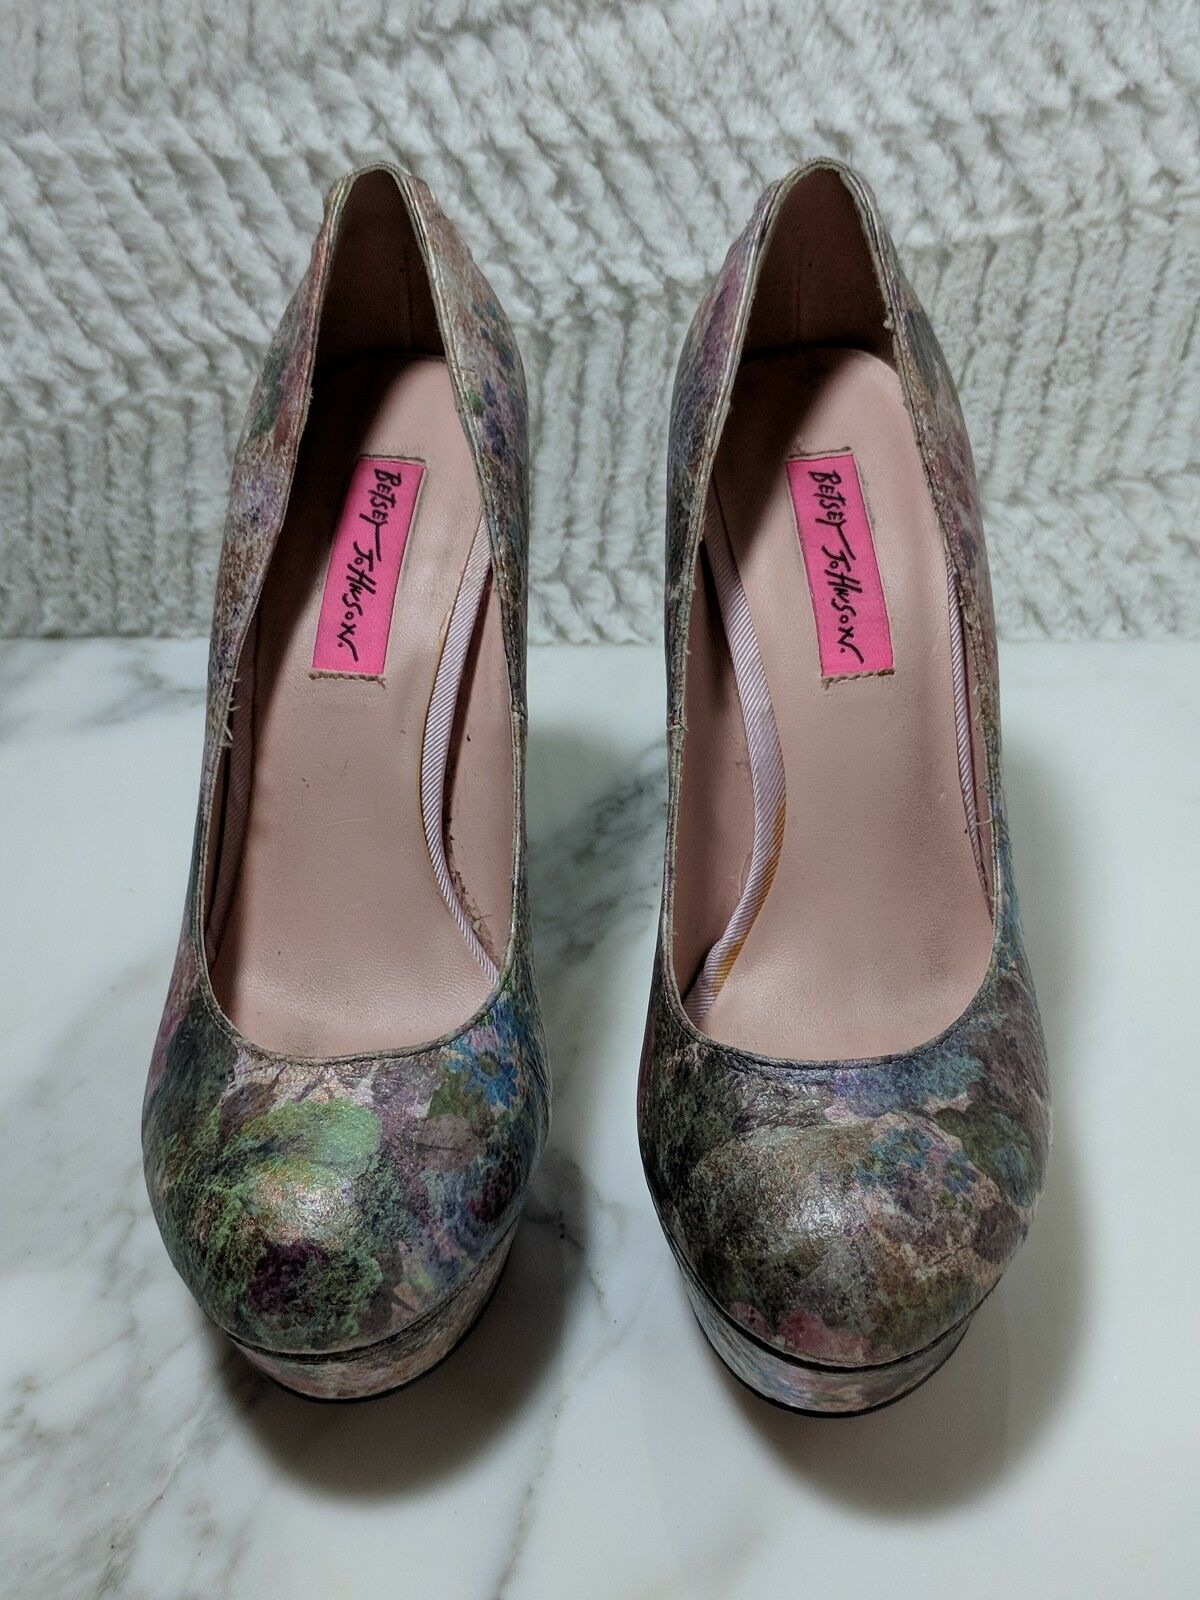 Betsey Johnson heels pumps pink floral back lace up size 8